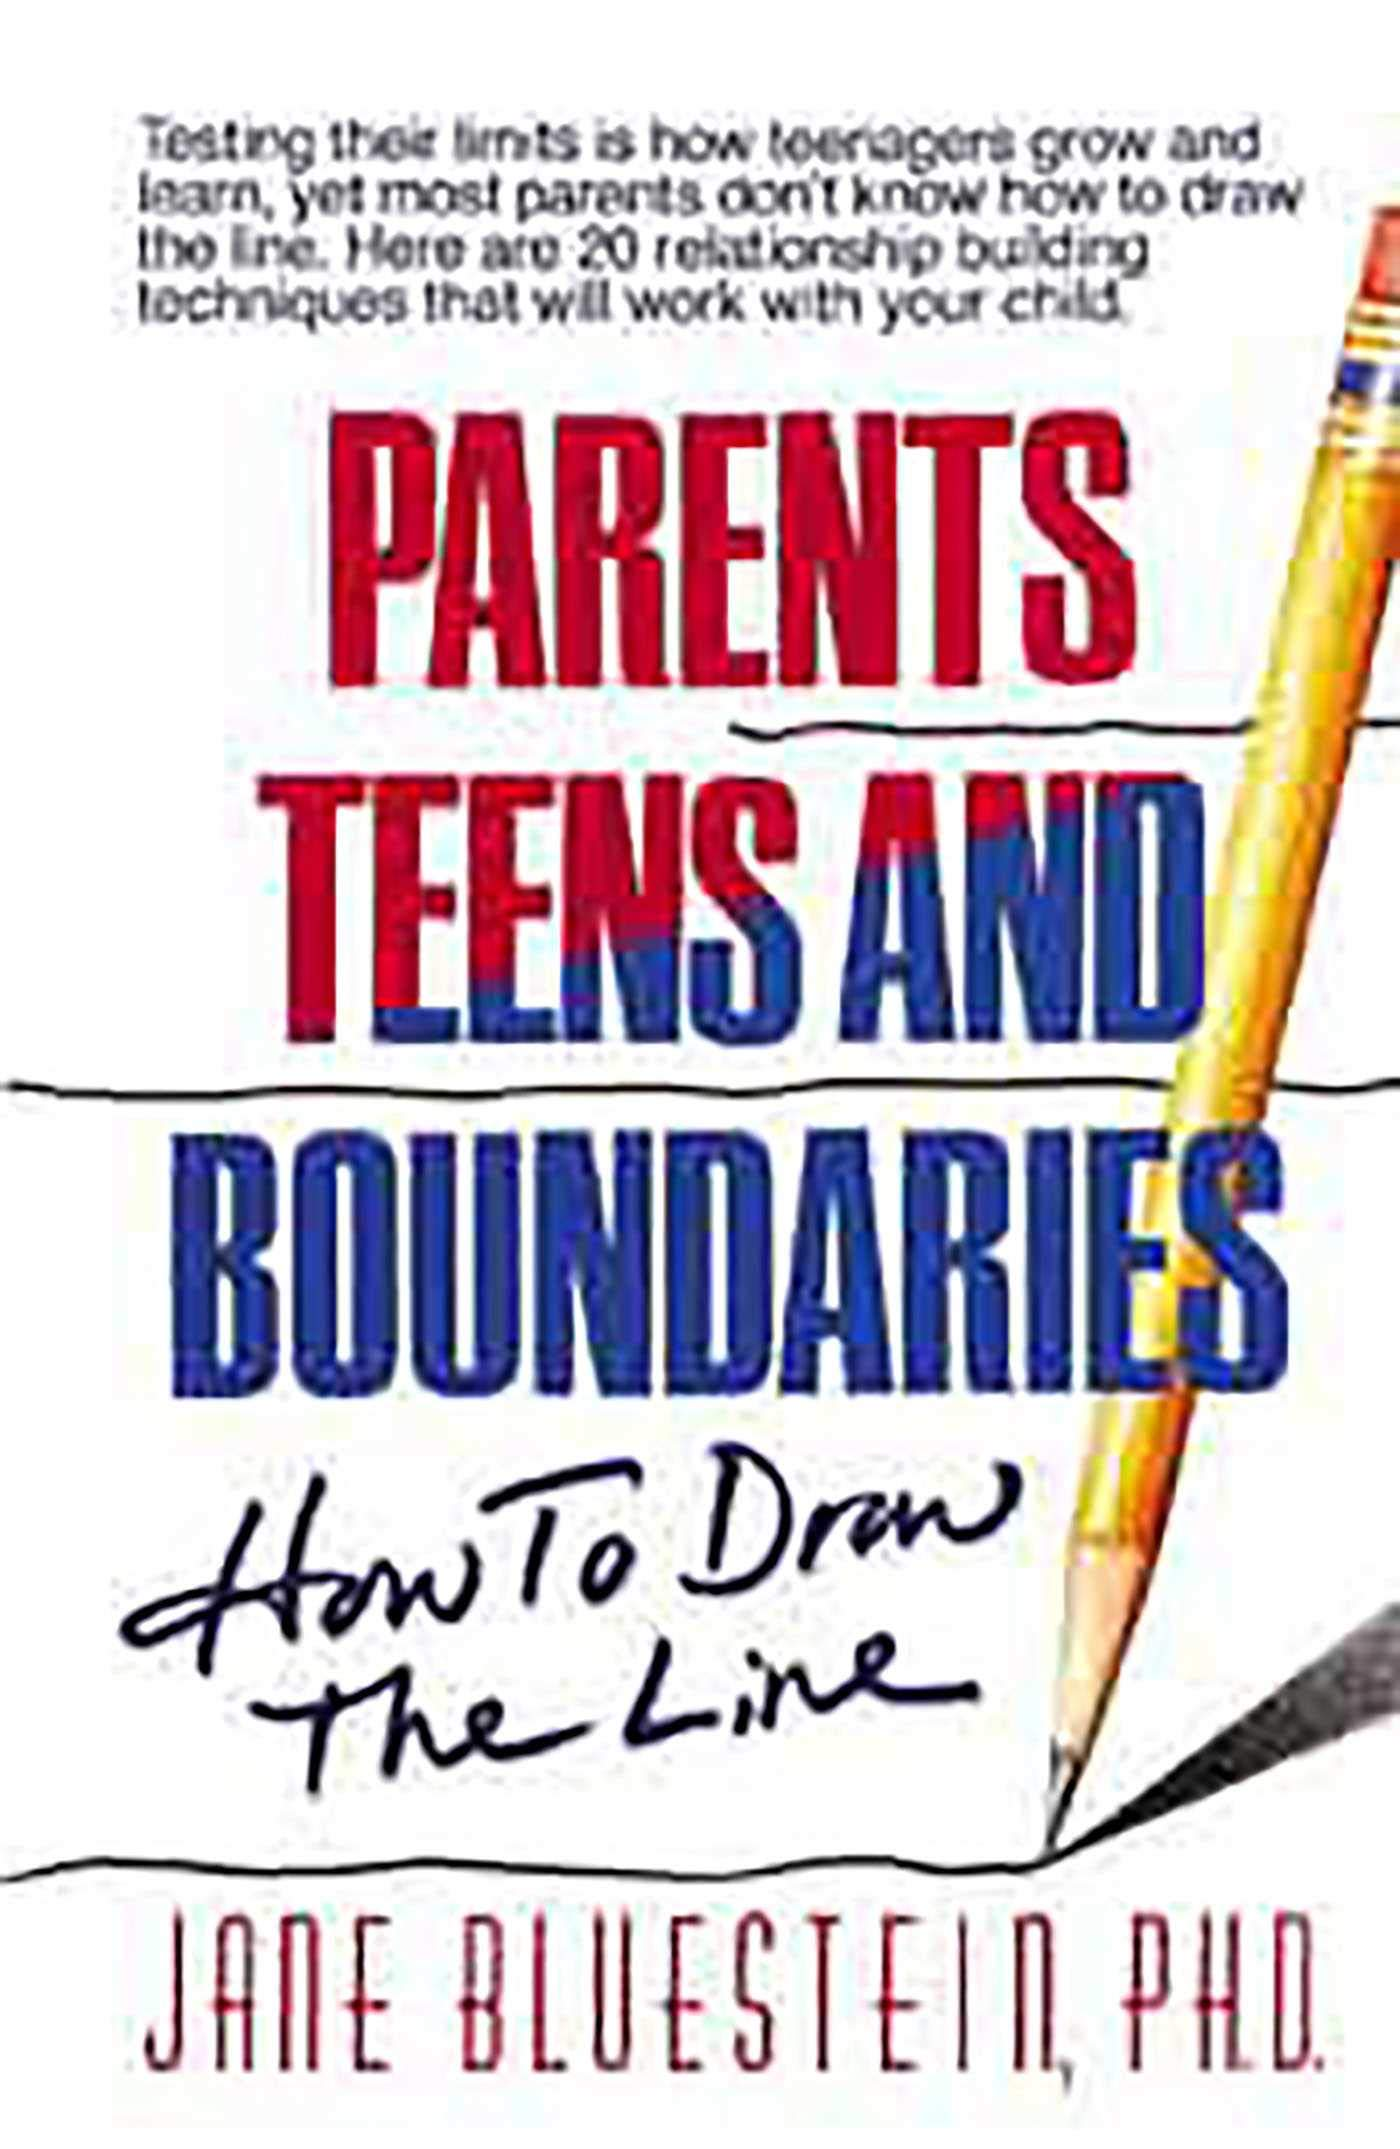 What Teens Need Most From Their Parents >> Parents Teens And Boundaries How To Draw The Line Jane Bluestein